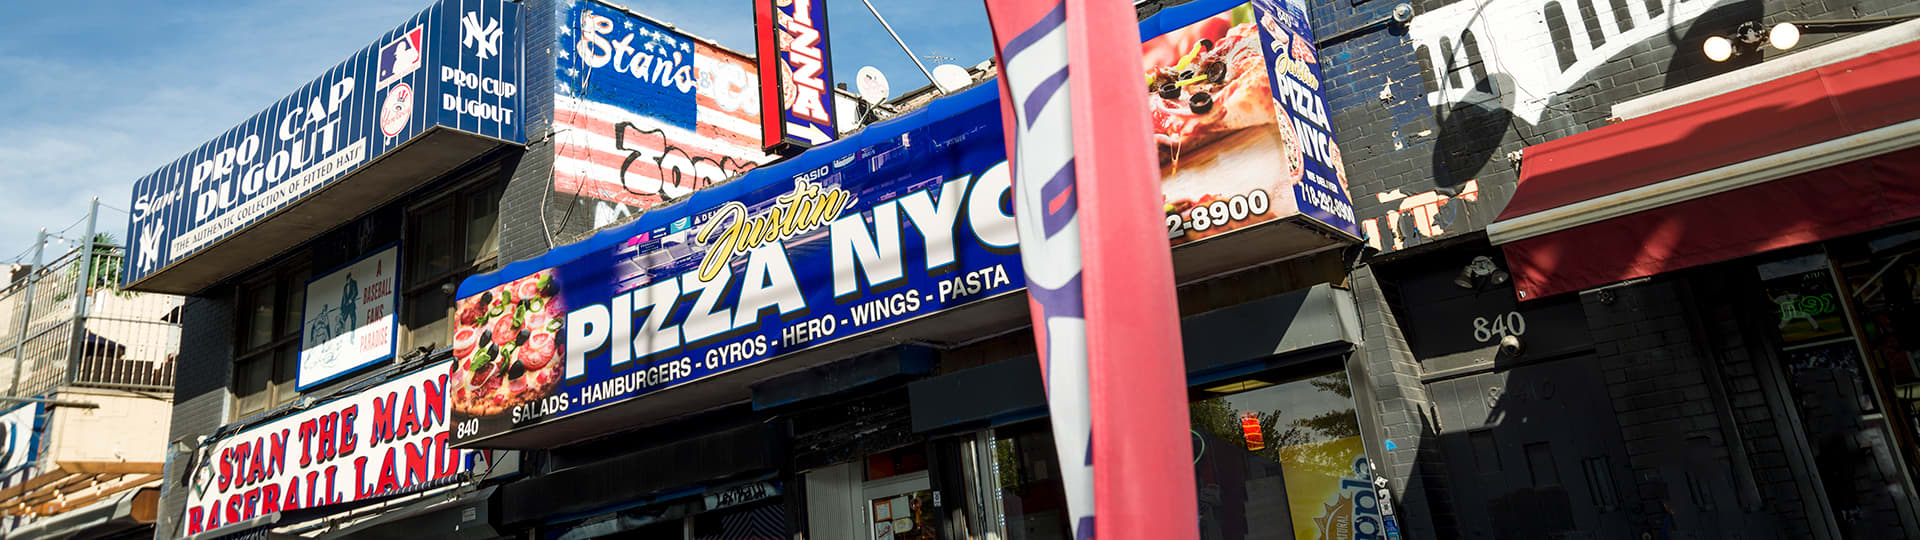 dining in the south bronx, NYC